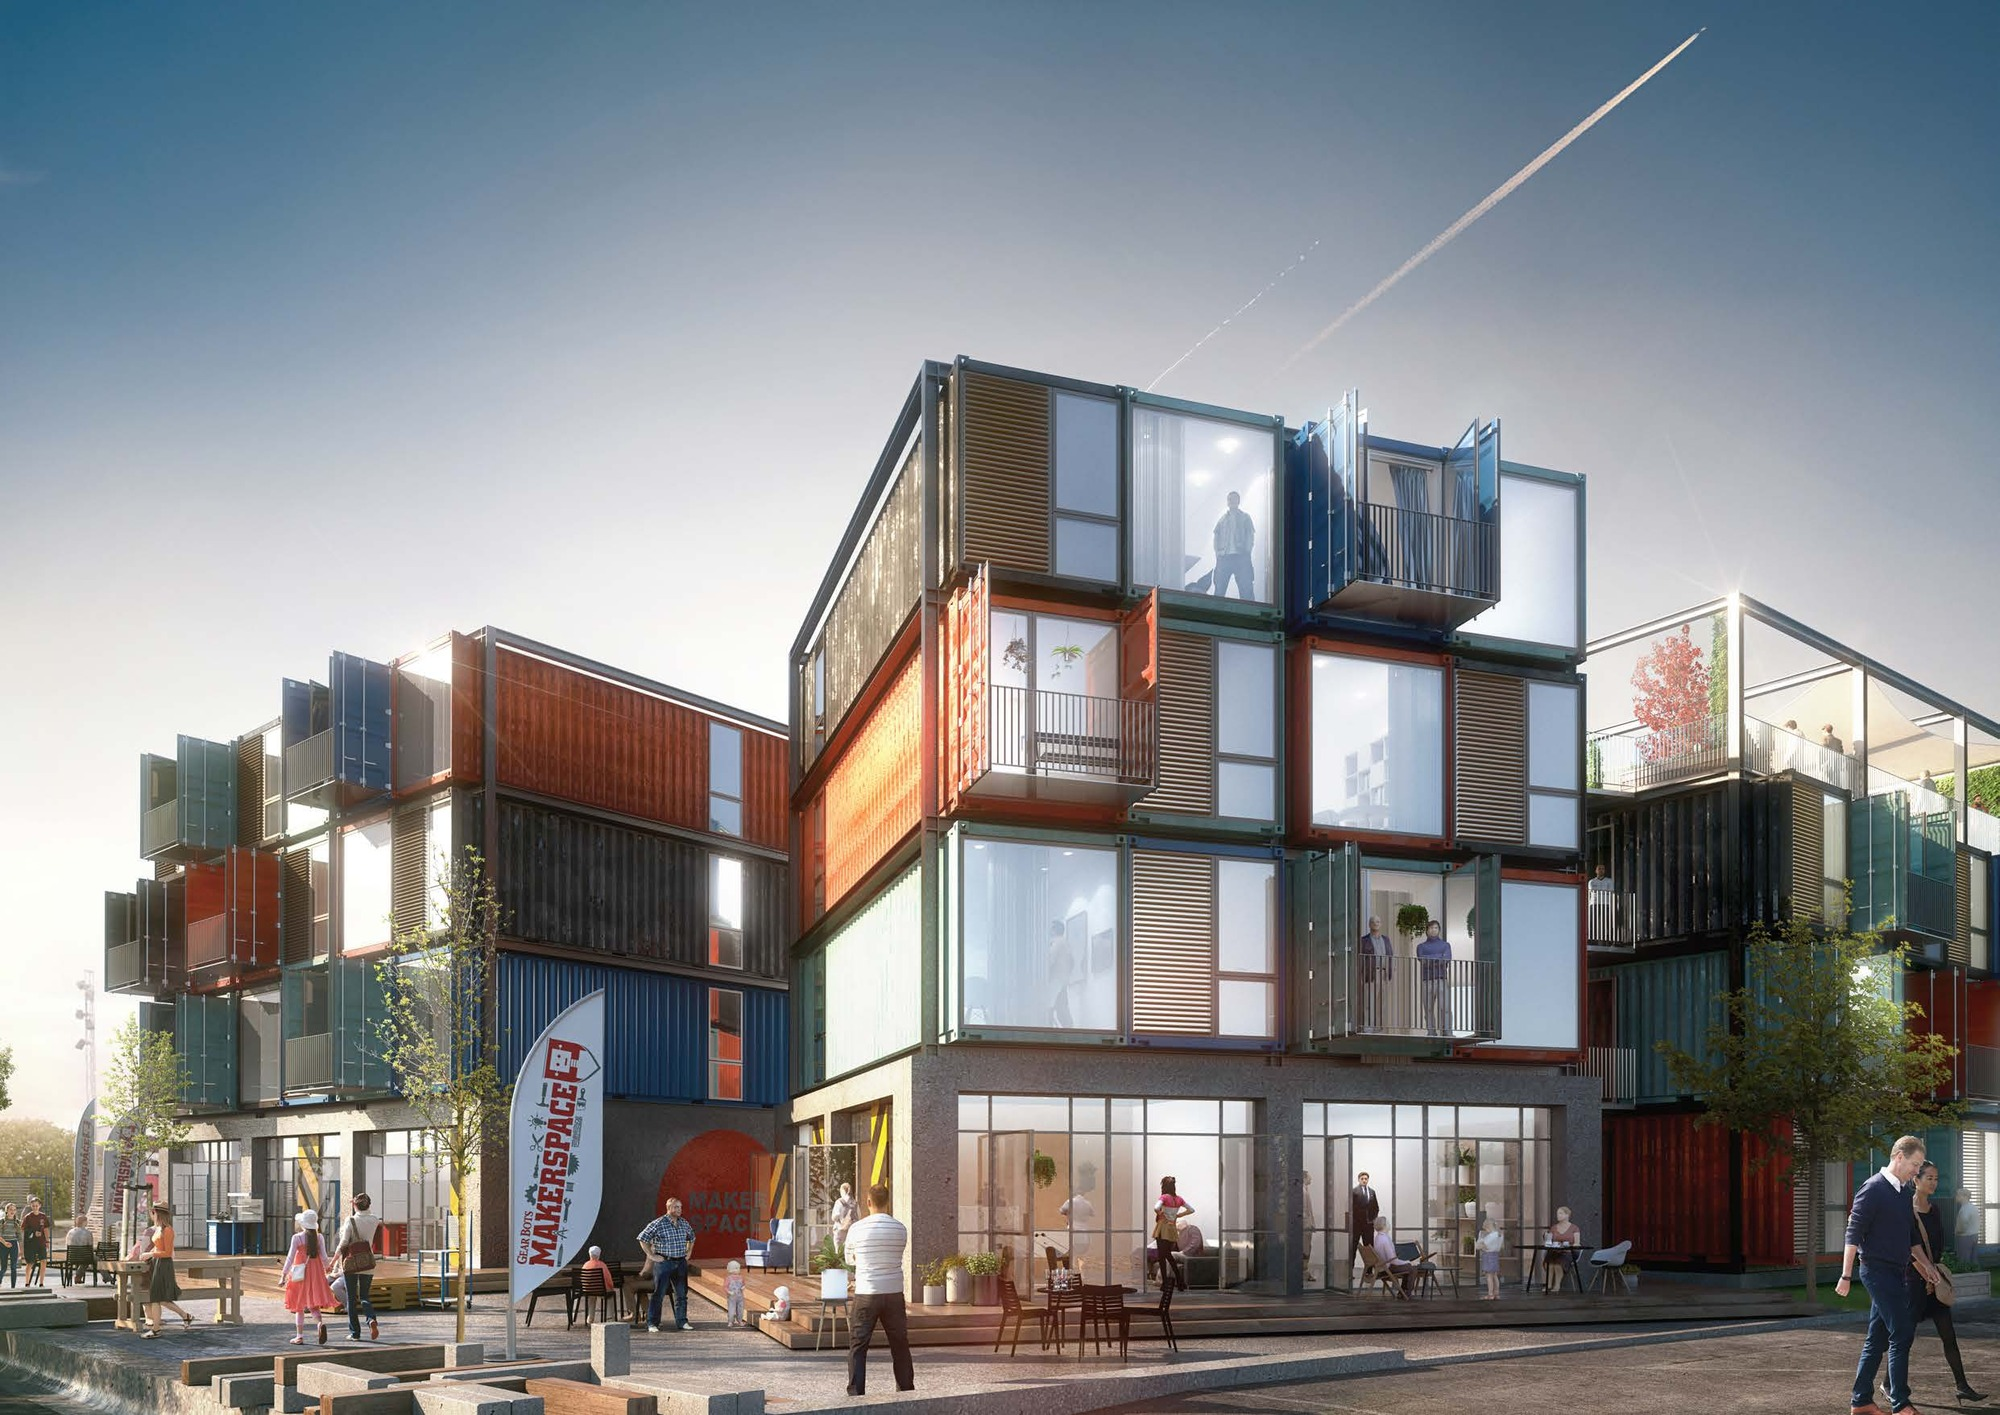 Architectural Design Of Residential Building Arkitema Architects Designs 30 Shipping Container Apartments In